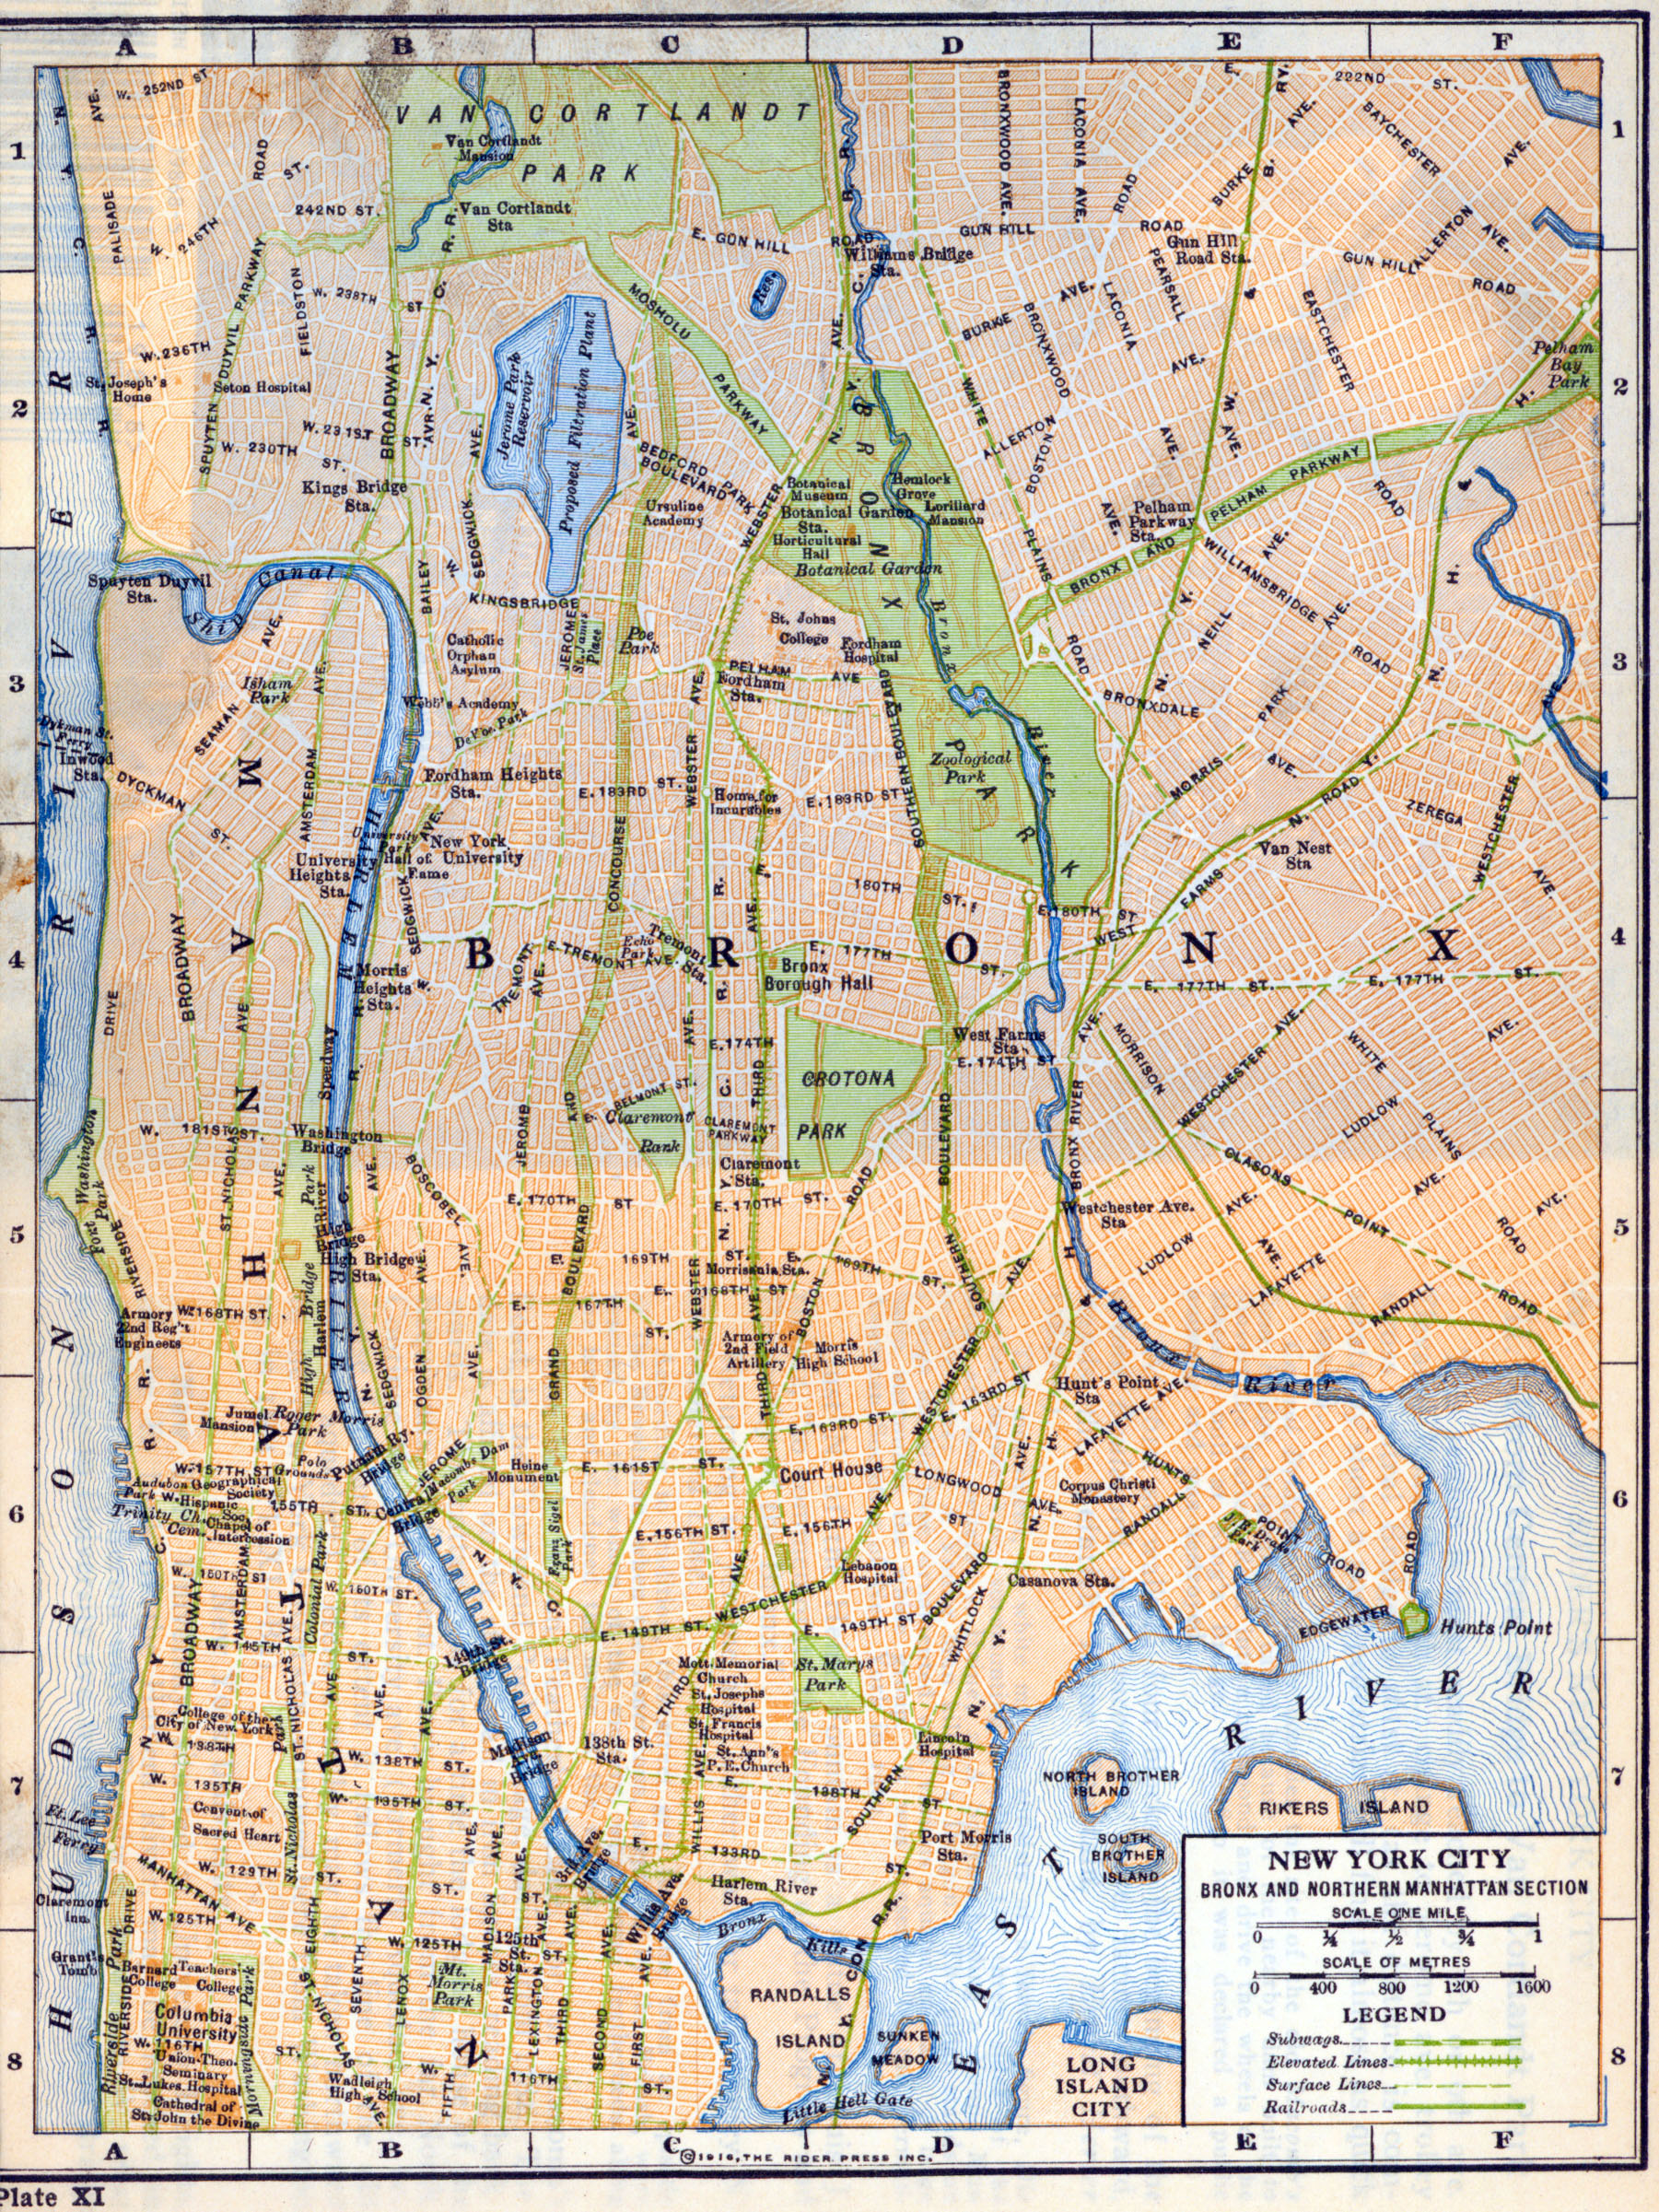 Map of the Bronx and Upper Manhattan in New York City Rider Press